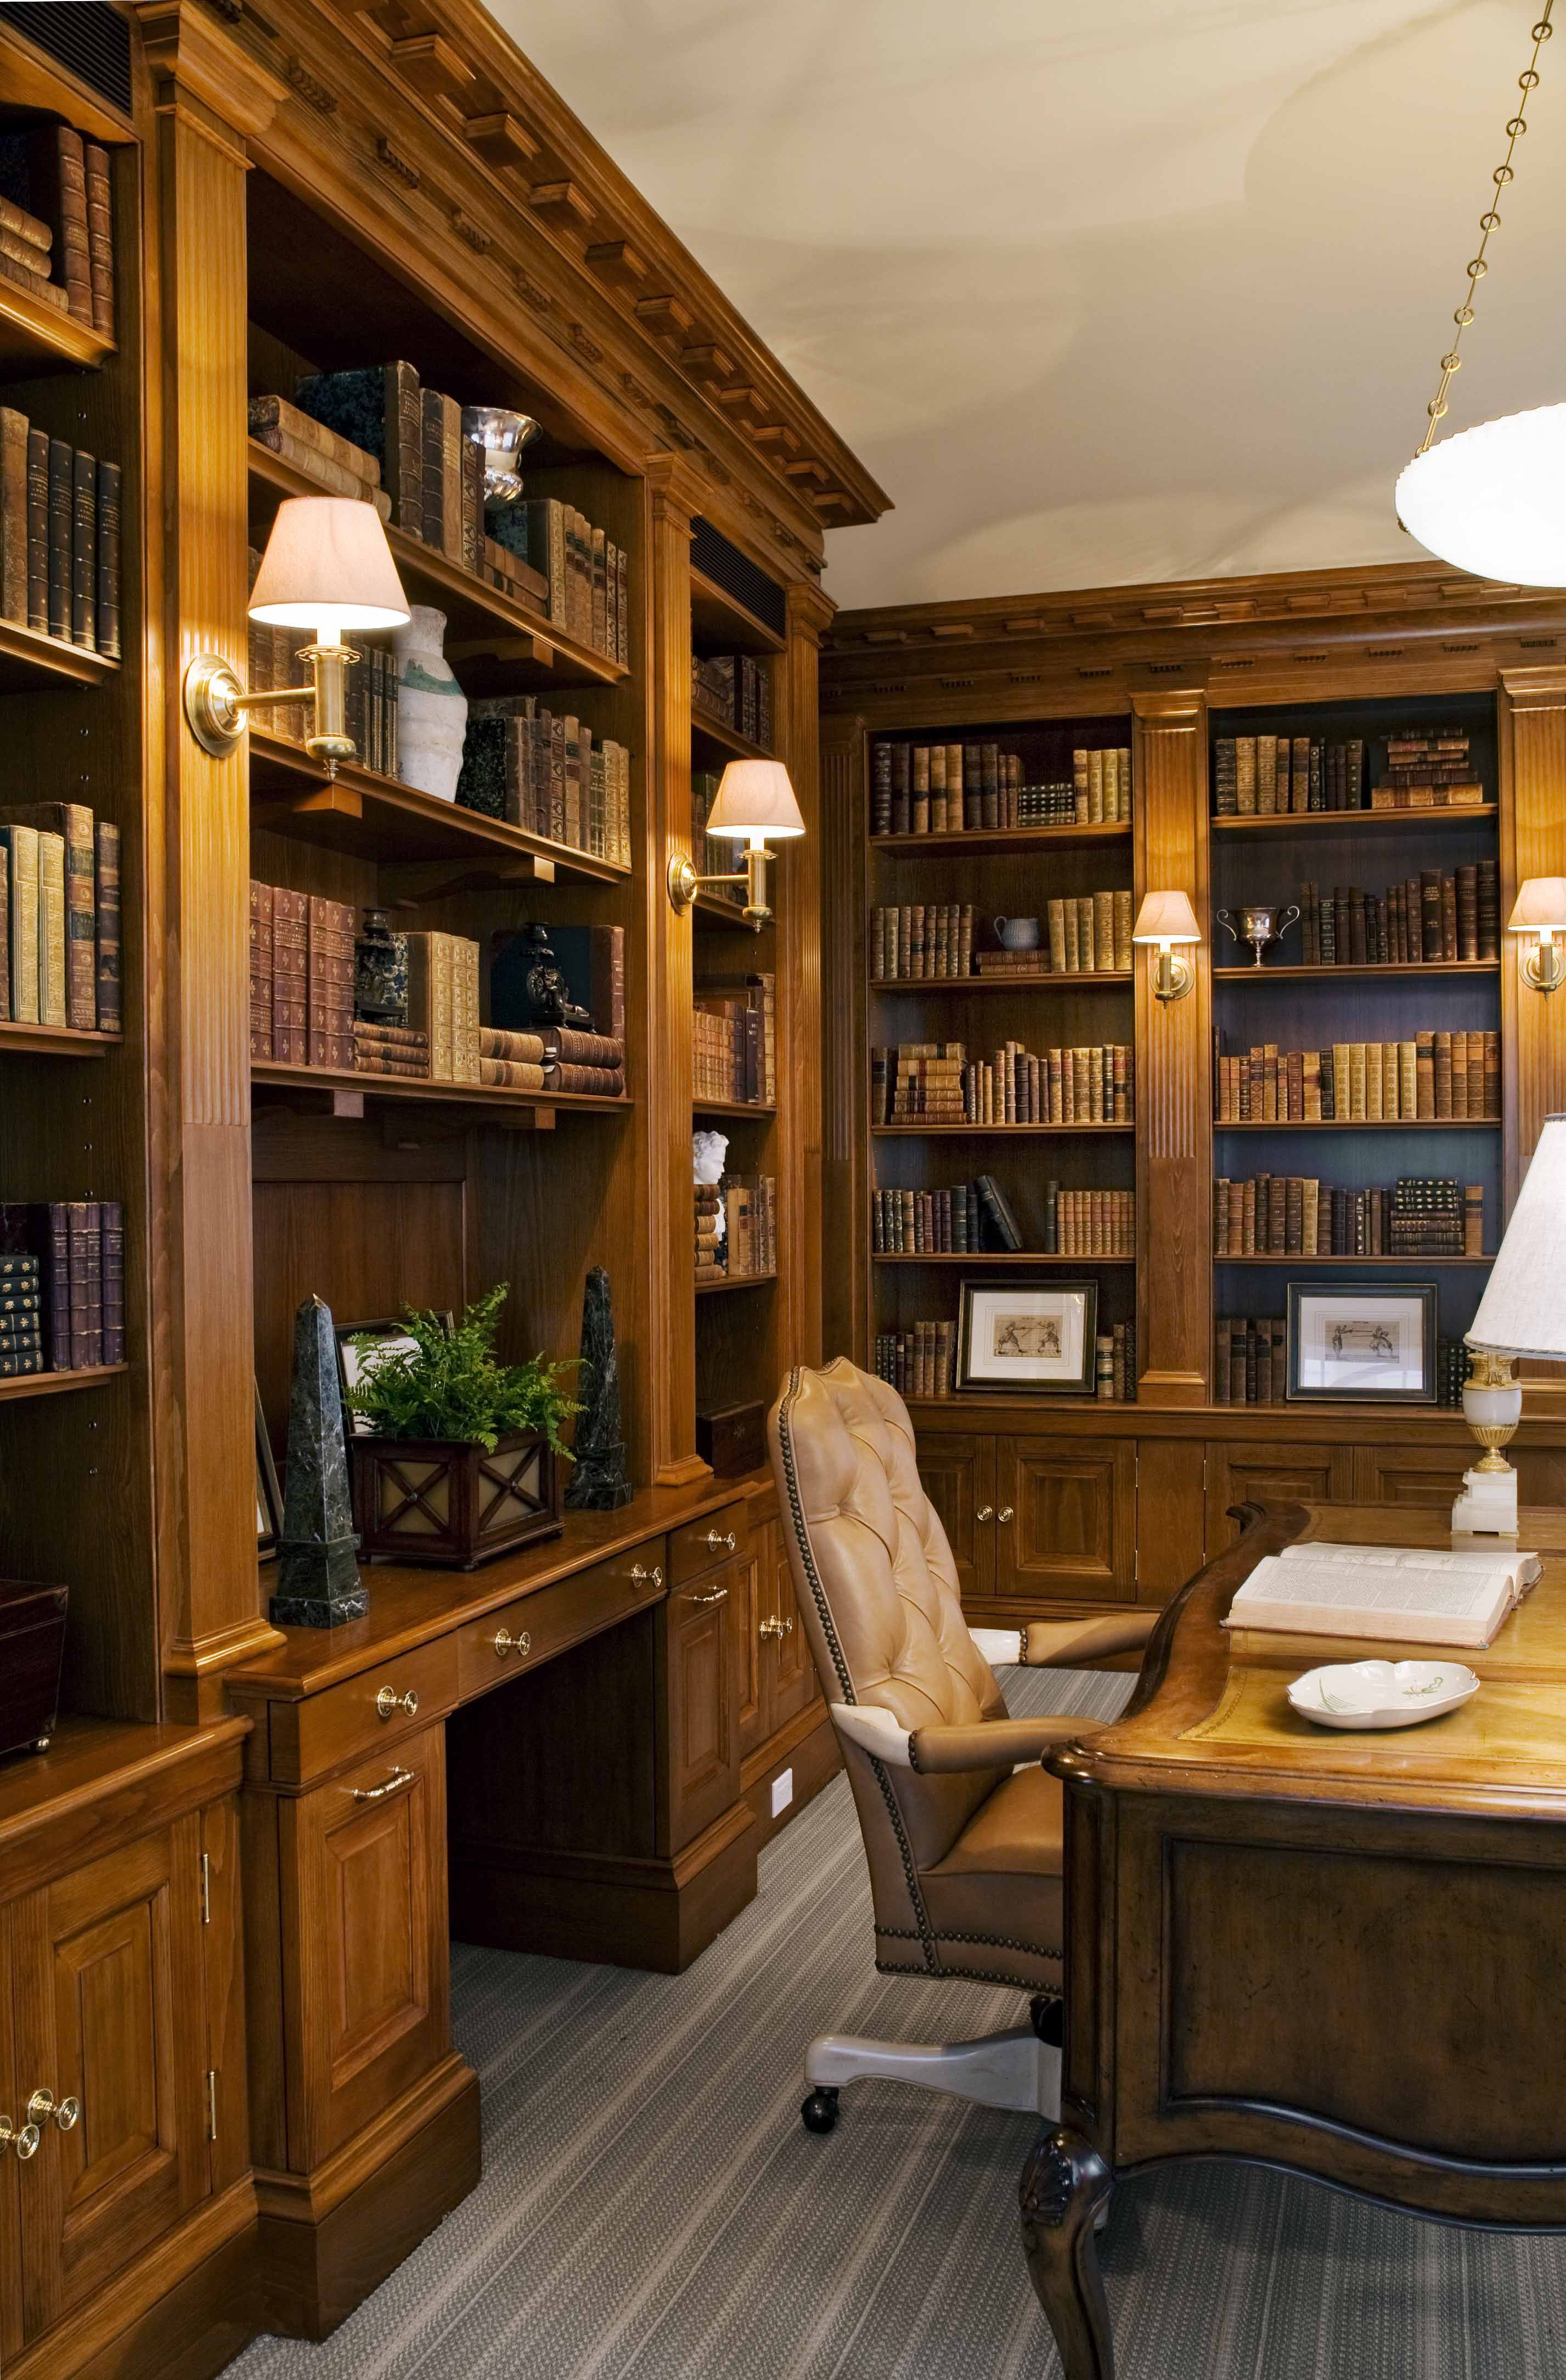 Home Office With Custom Cabinetry, Shelving, And Dentil